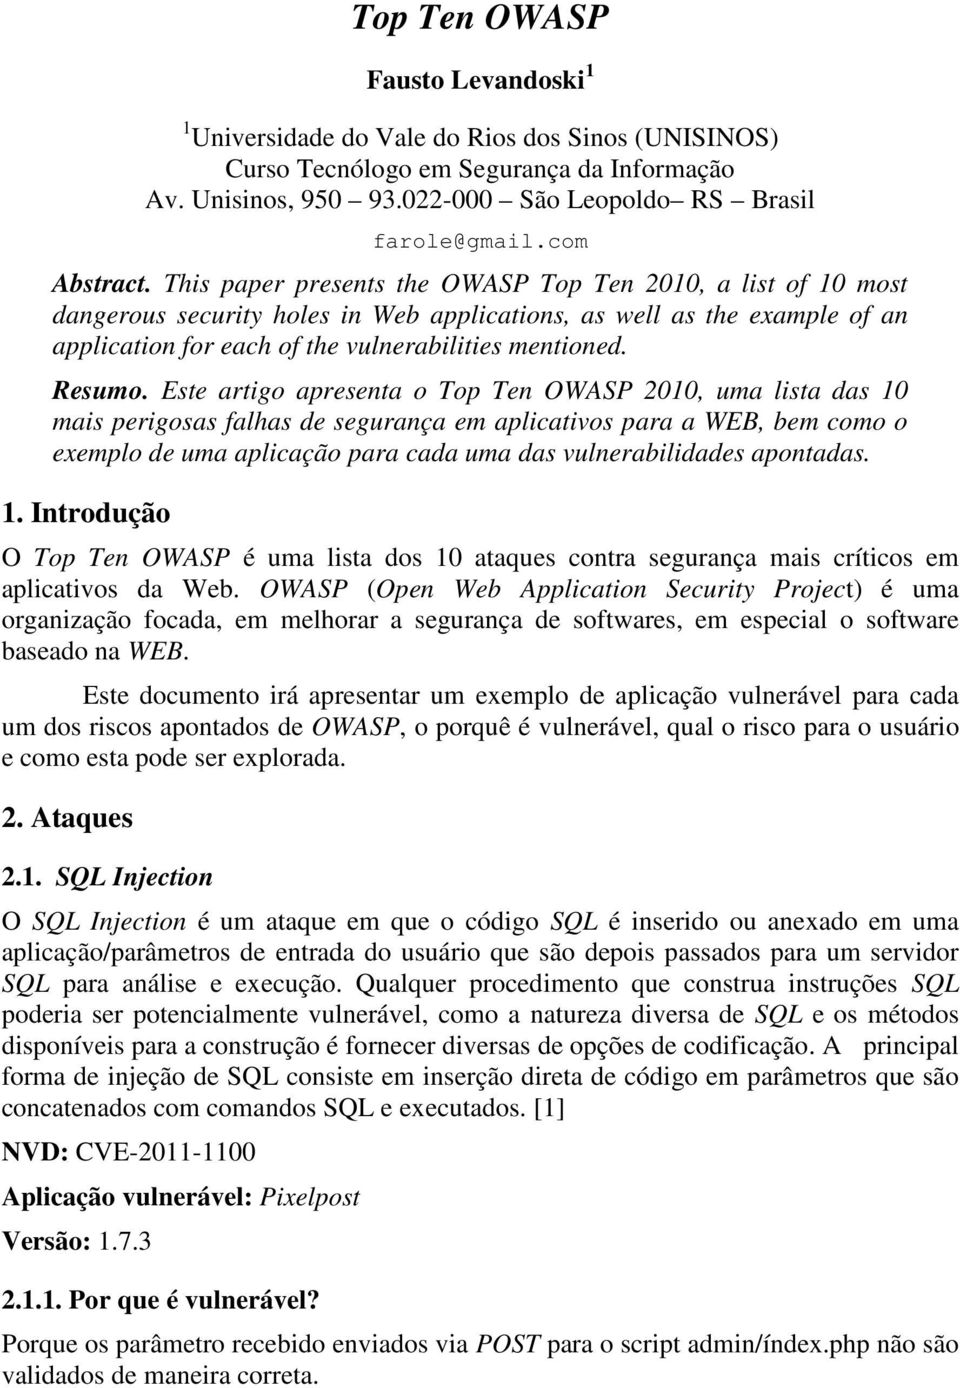 This paper presents the OWASP Top Ten 2010, a list of 10 most dangerous security holes in Web applications, as well as the example of an application for each of the vulnerabilities mentioned. Resumo.